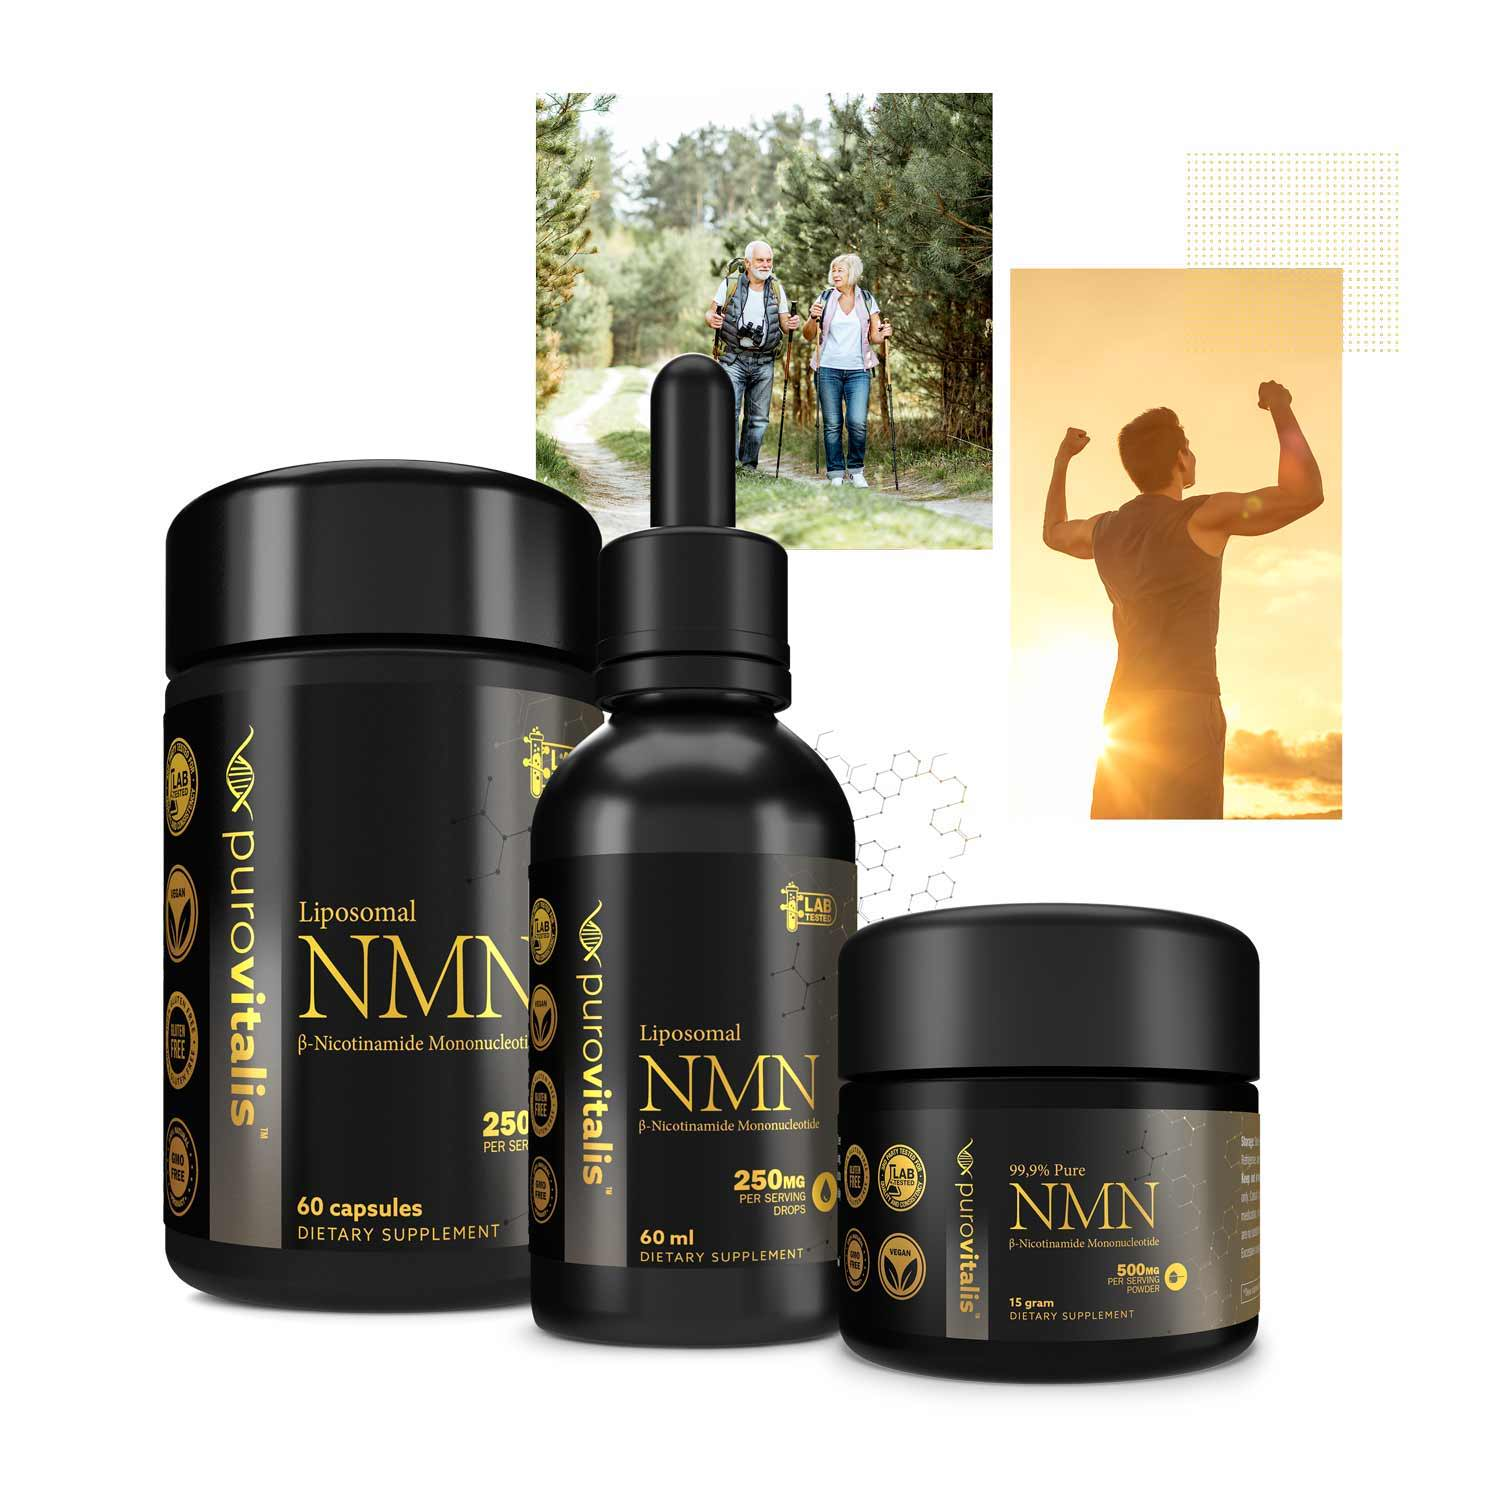 Displaying image showing the NMN product family, Liposomal NMN Drops & capsules and the Pure NMN Powder.